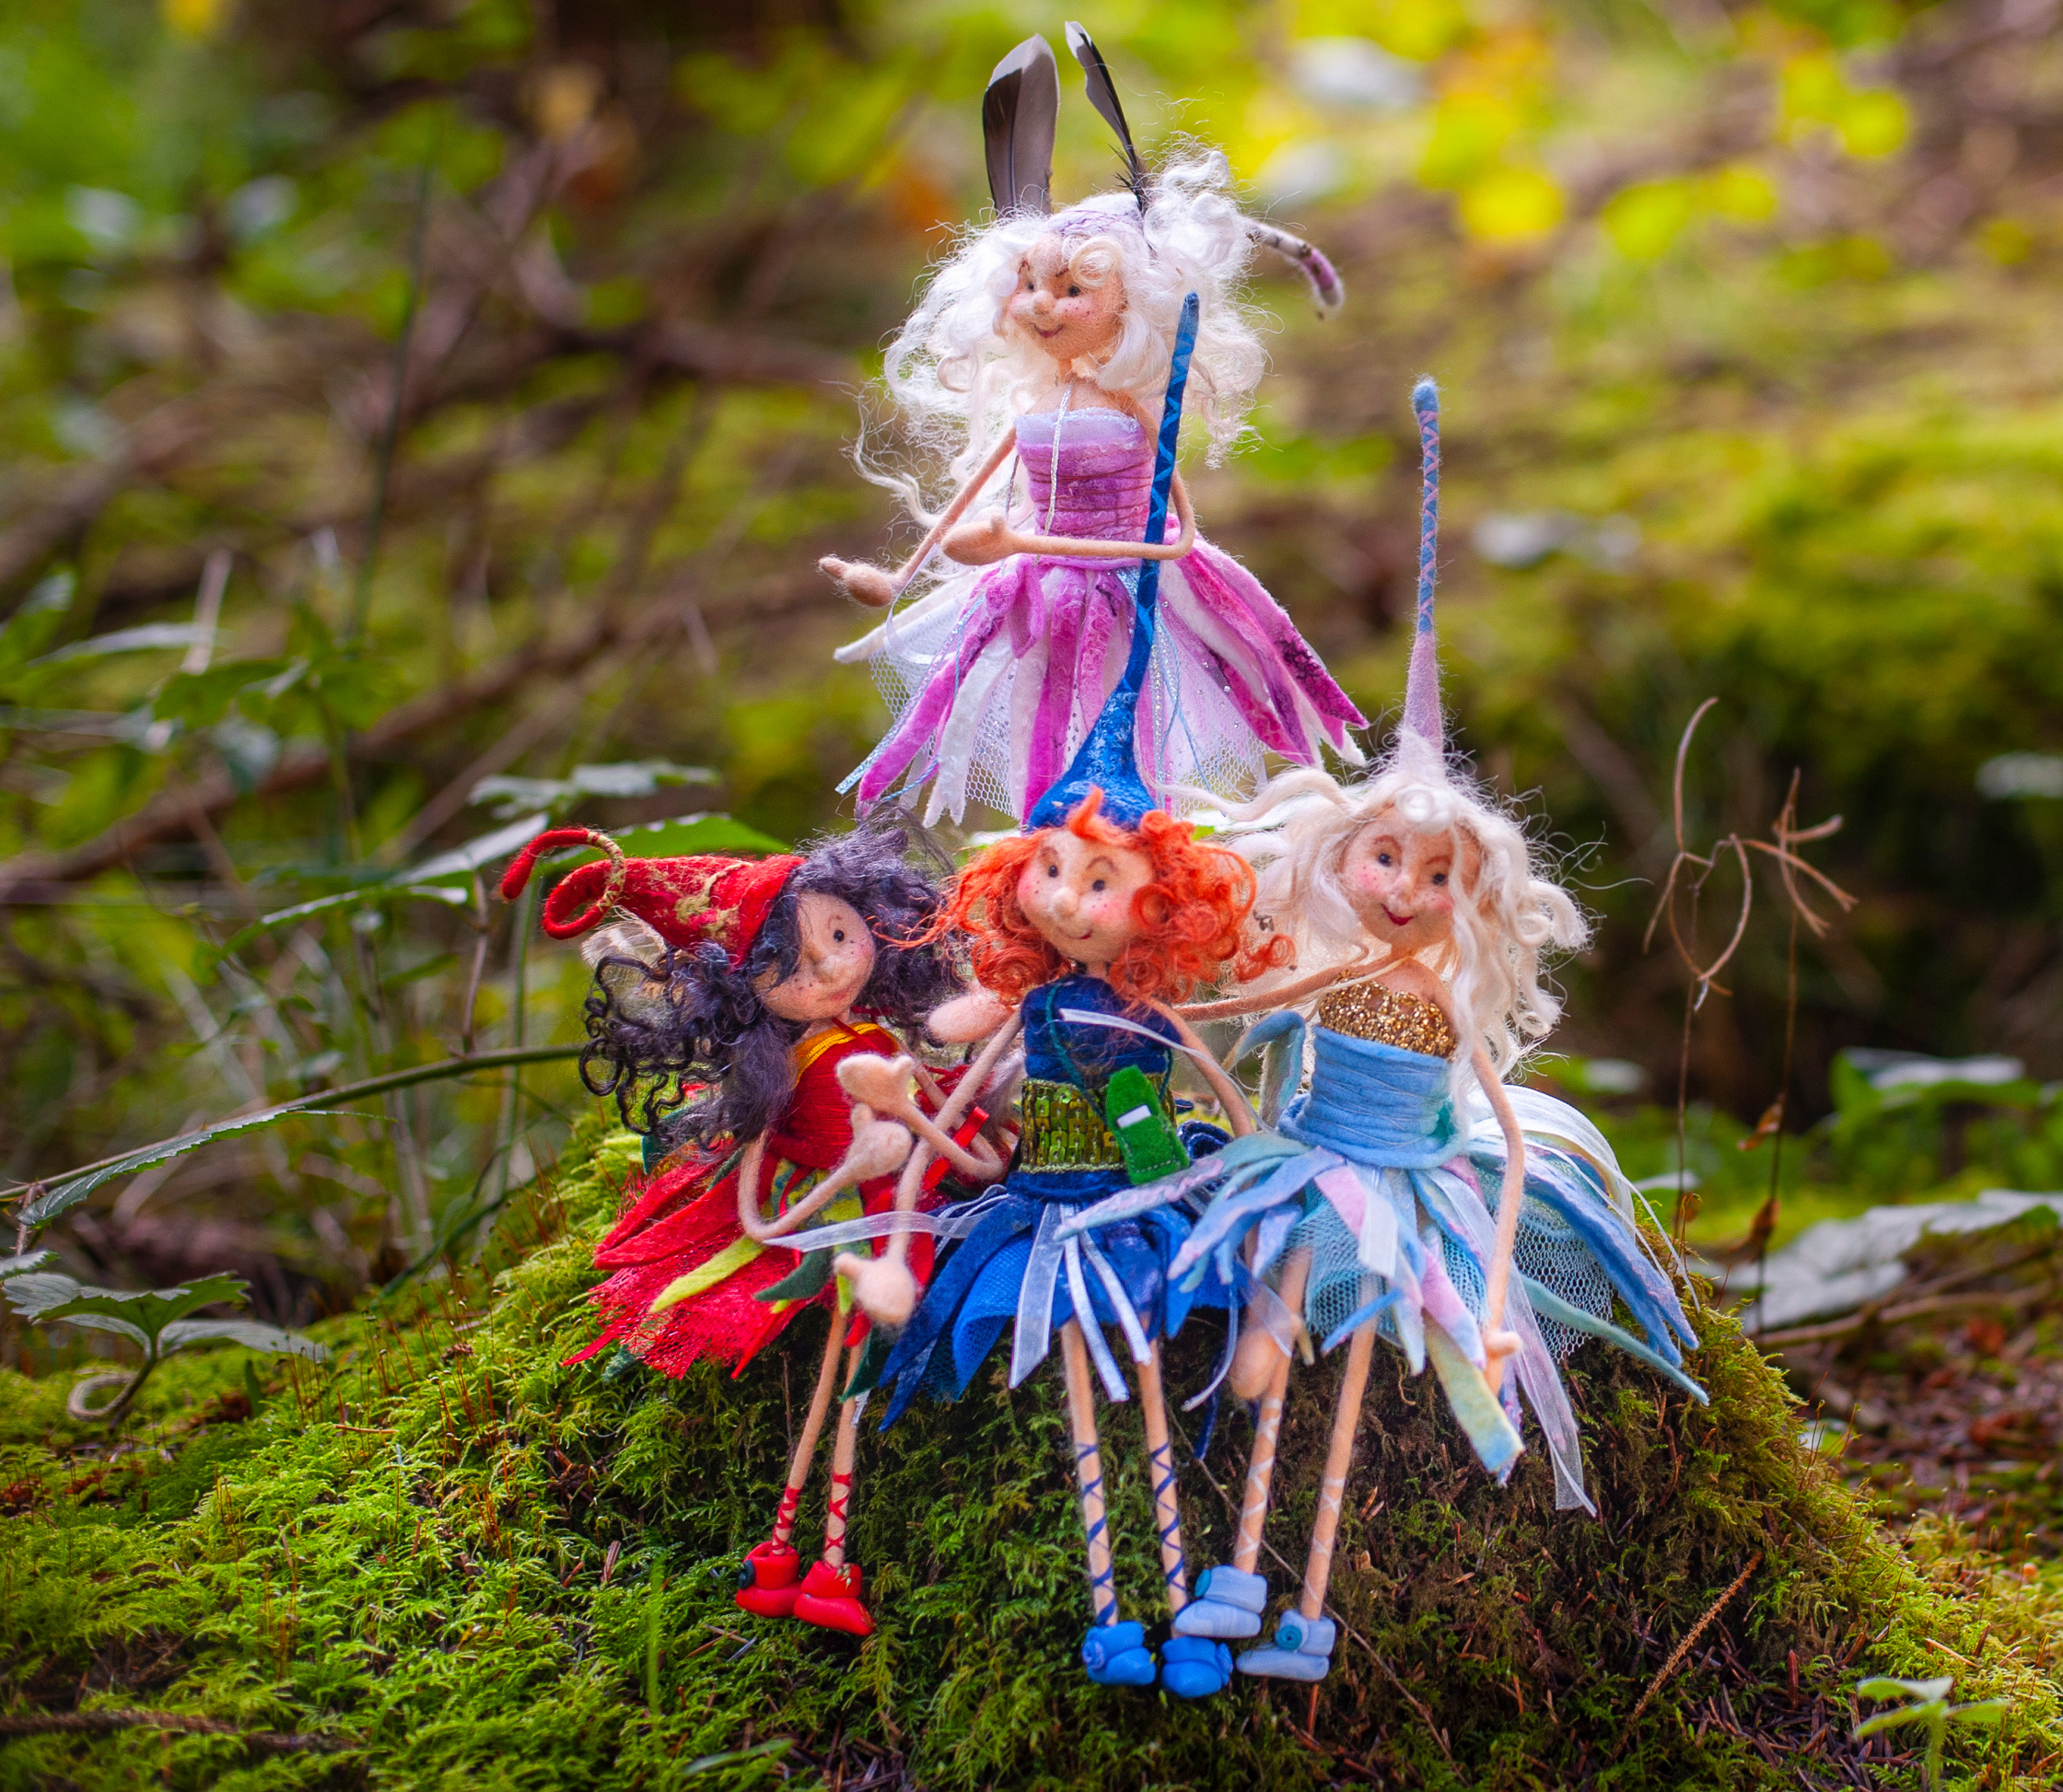 Felting with wool and making fairies